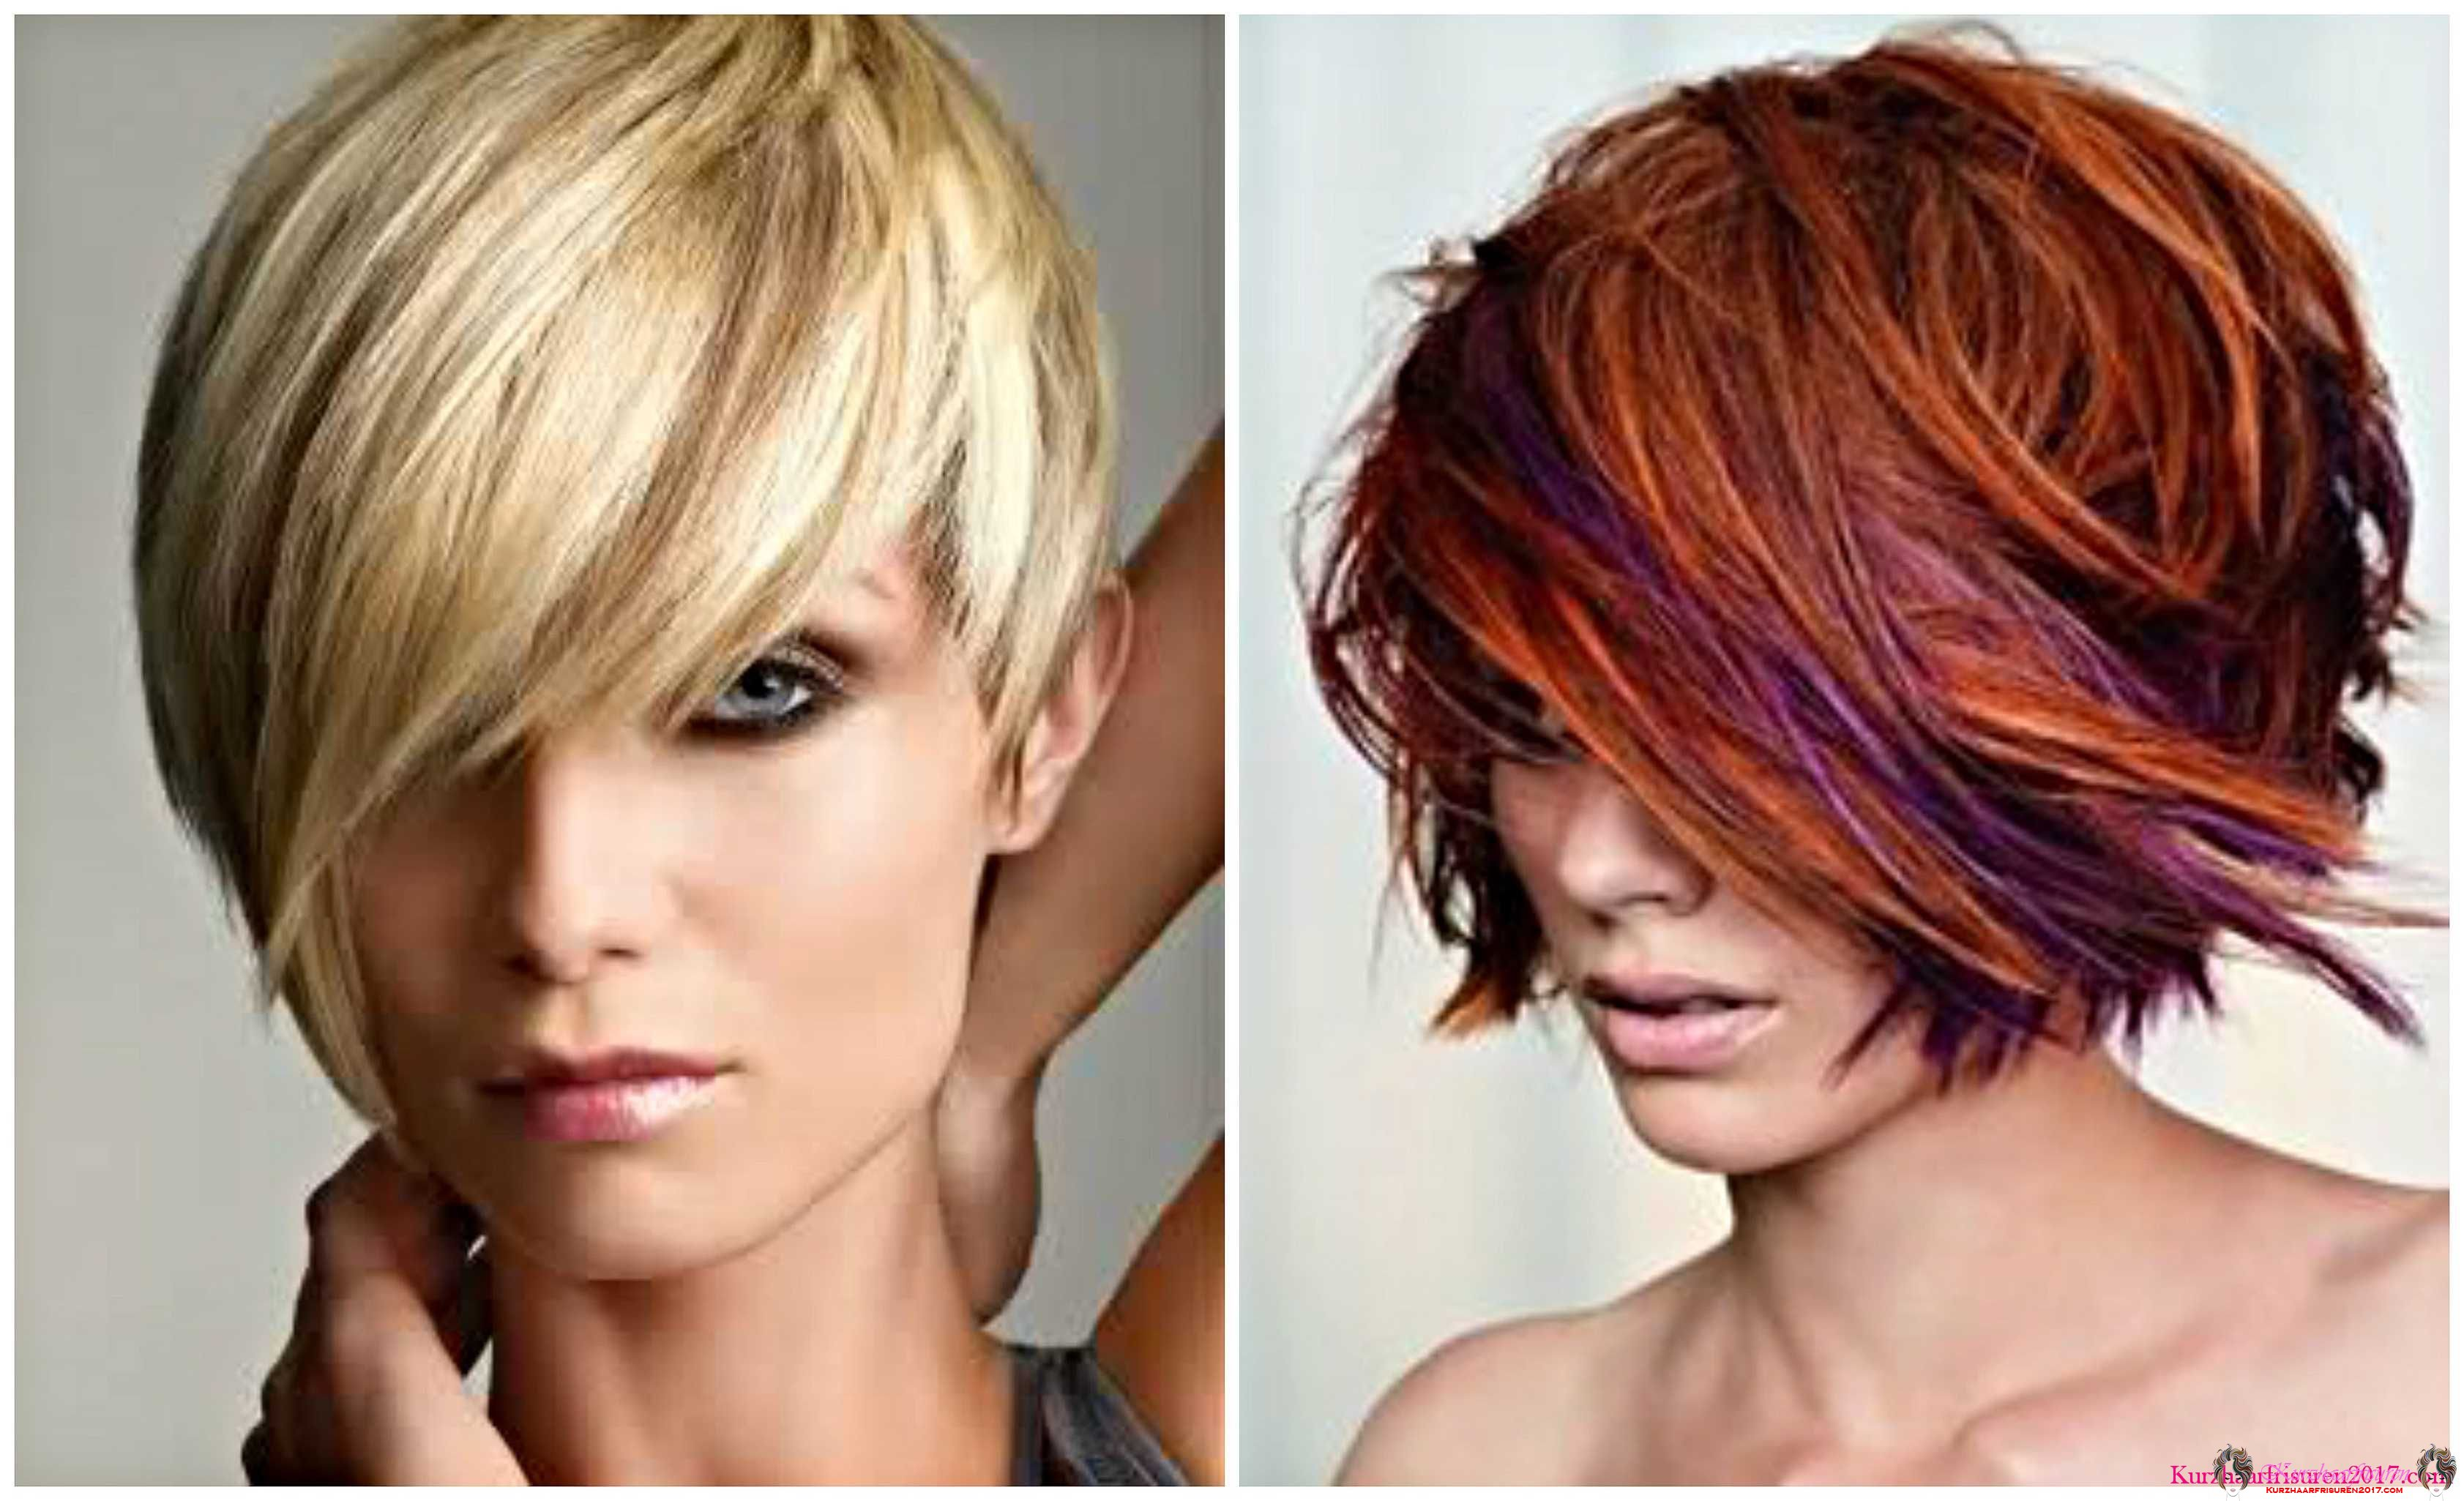 Hair Color Ideas For Short Hair 2017: Kurzhaarfrisuren 2017 Damen